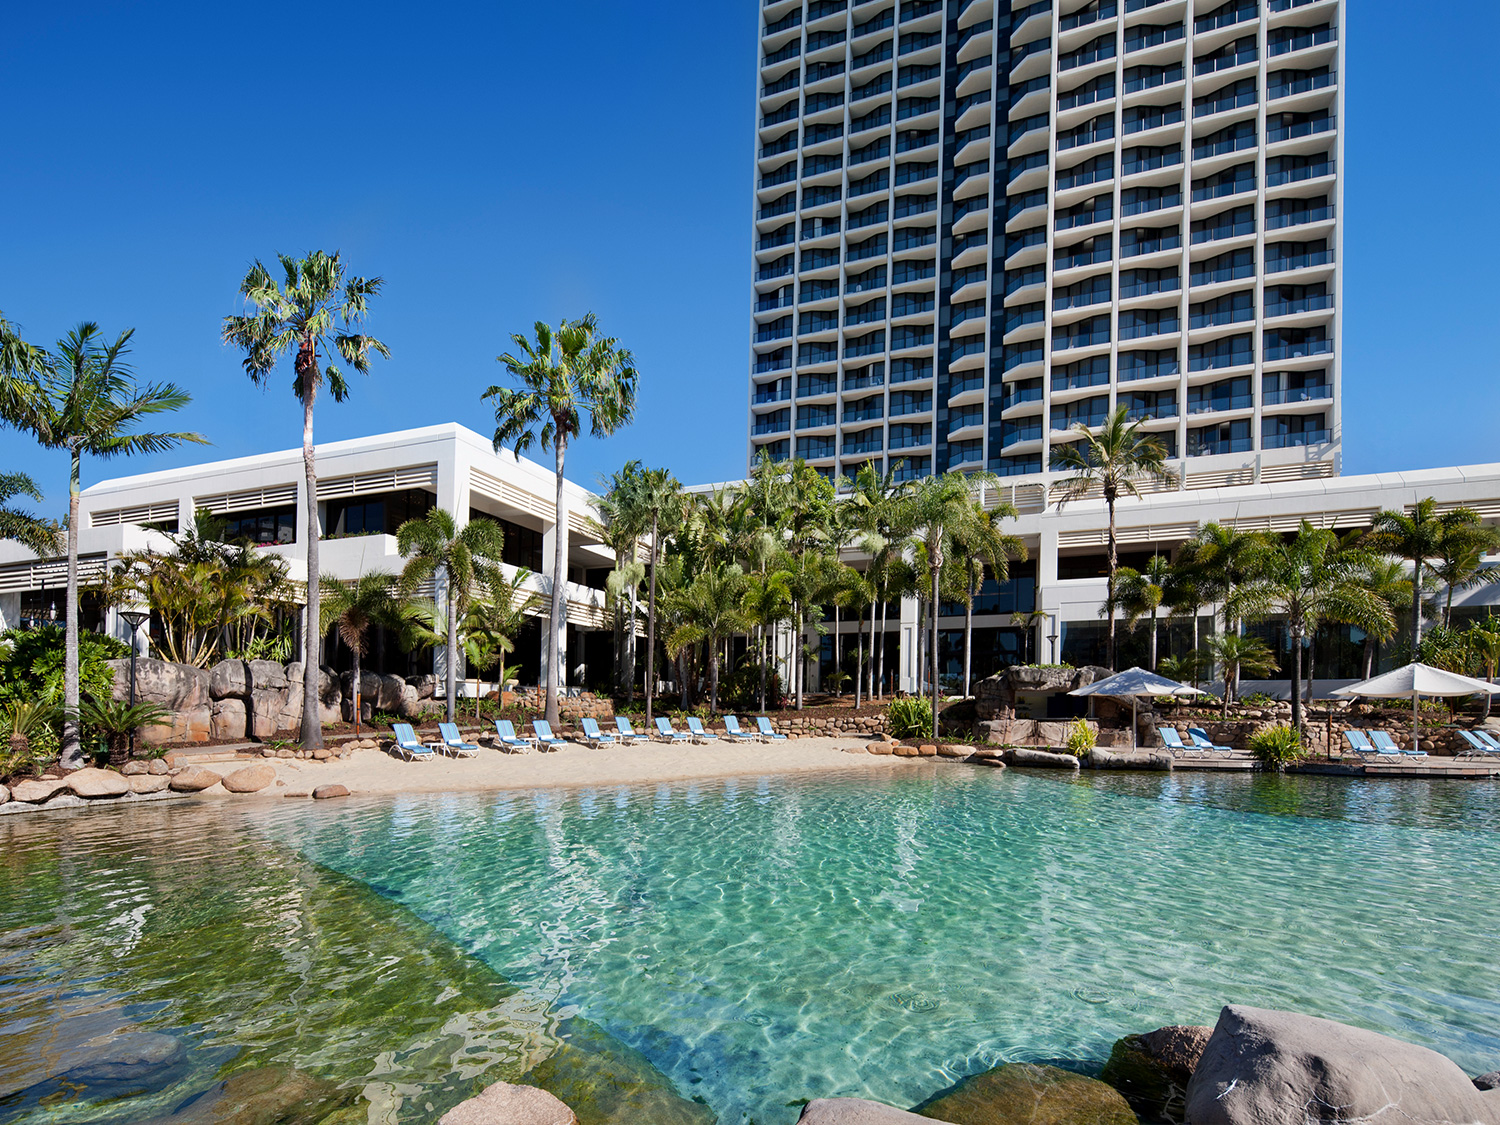 Surfers Paradise Marriott Resort  Spa  Hightide Holidays